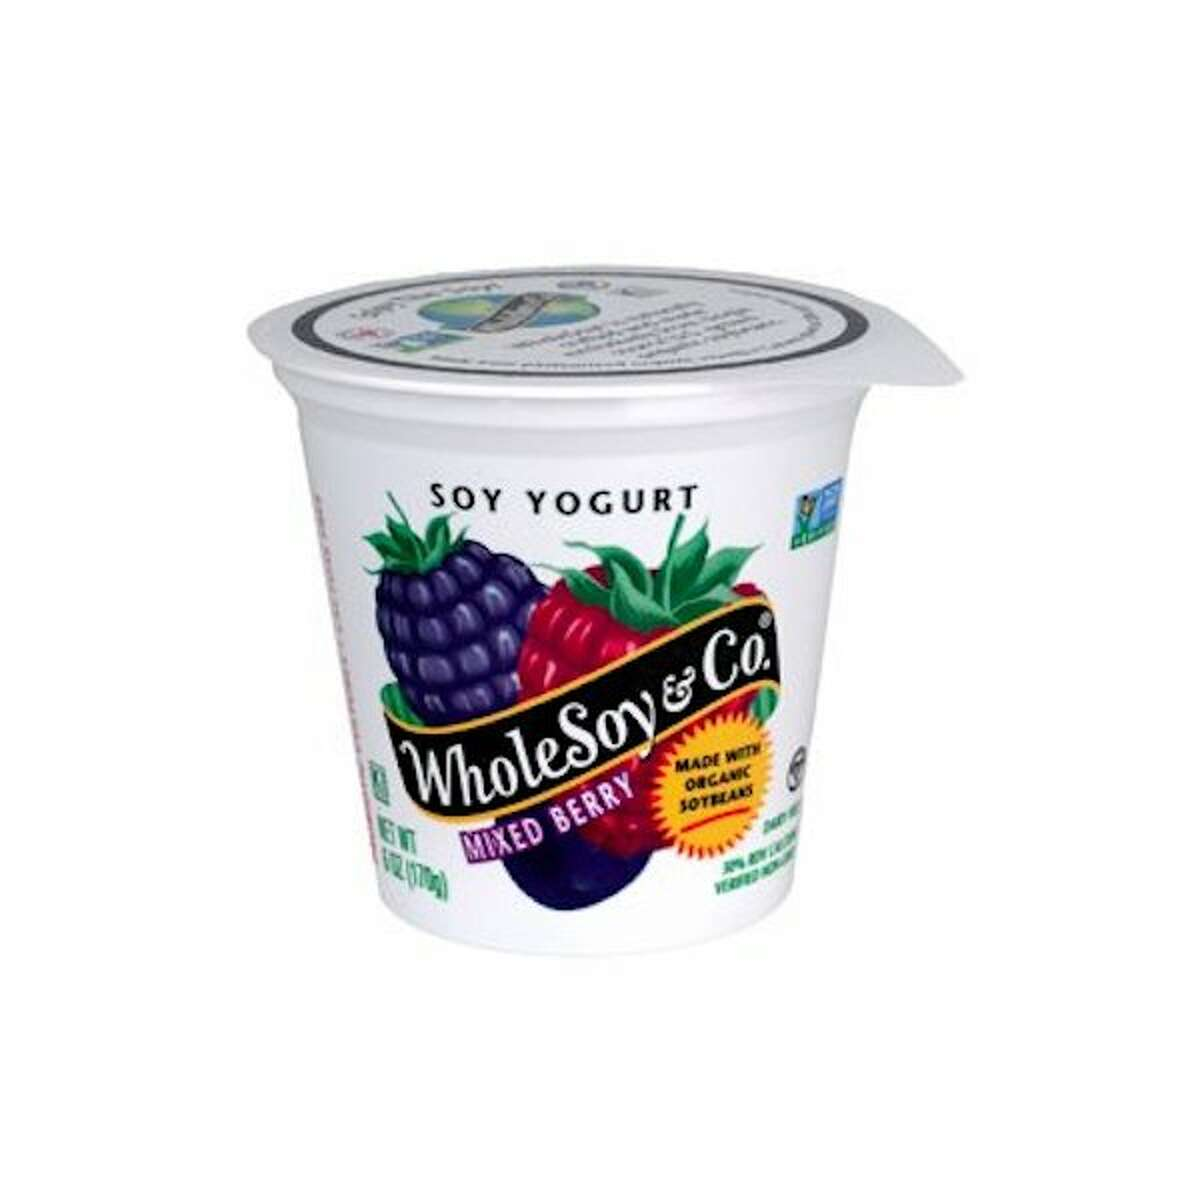 Popular yogurts that have more sugar than candy 15) WholeSoy & Co. Mixed Berry Soy YogurtTotal Sugar (g):22Calories:180Carbohydrates (g):34Protein (g):6Fat (g):3.5Serving Size (g):170